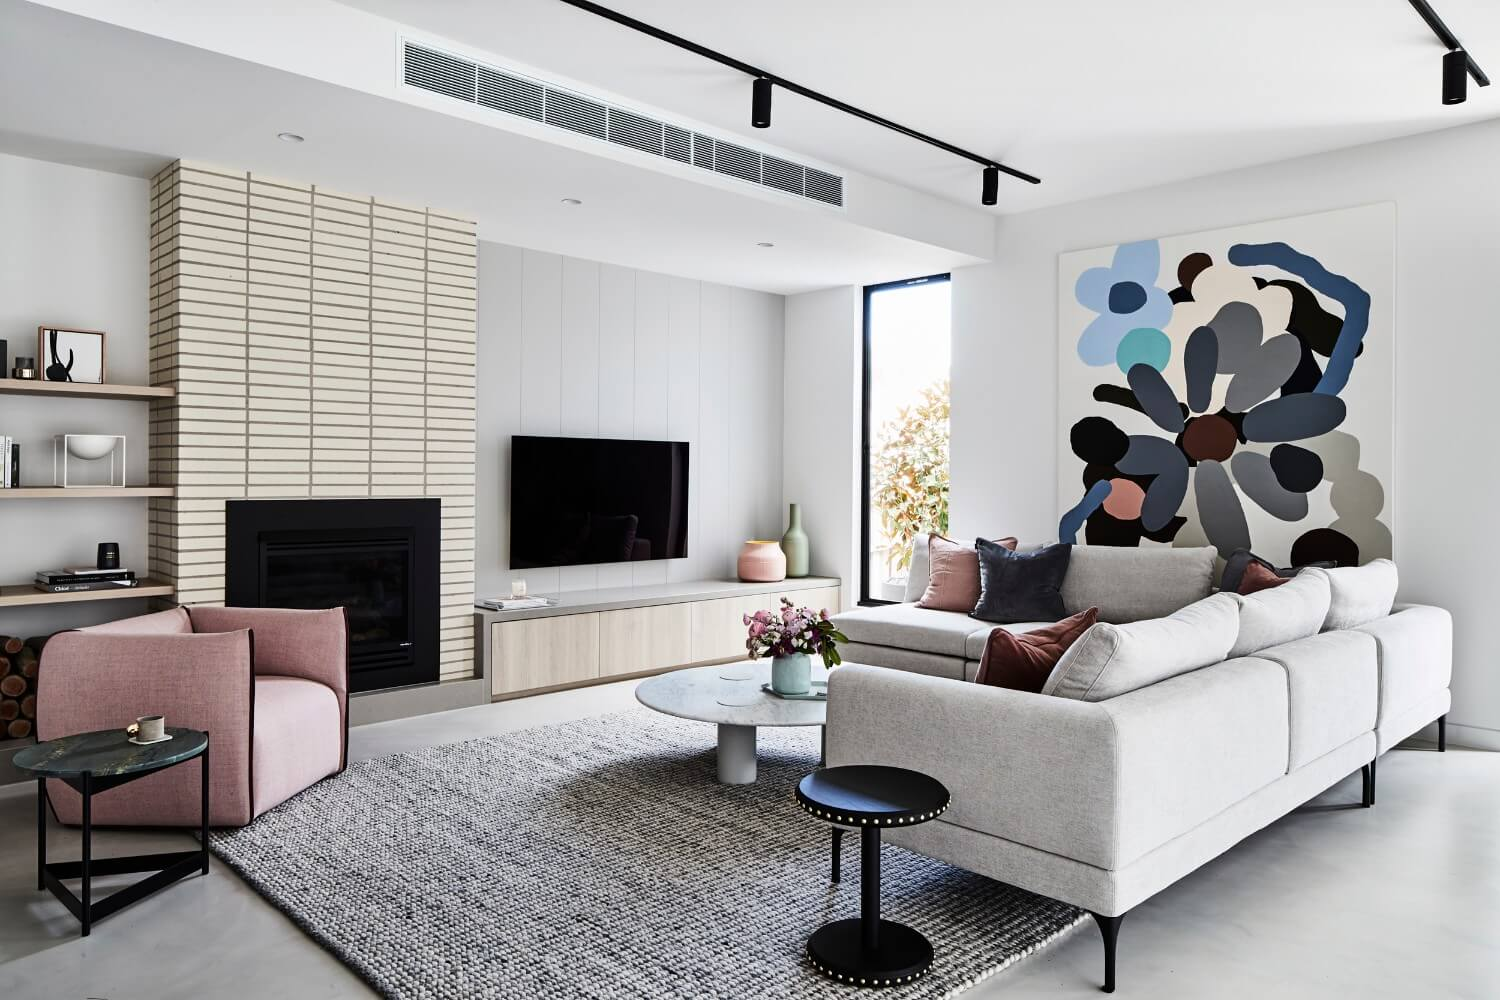 Looking for Living Room Style Ideas? Congratulations, You've Come to the Right Place